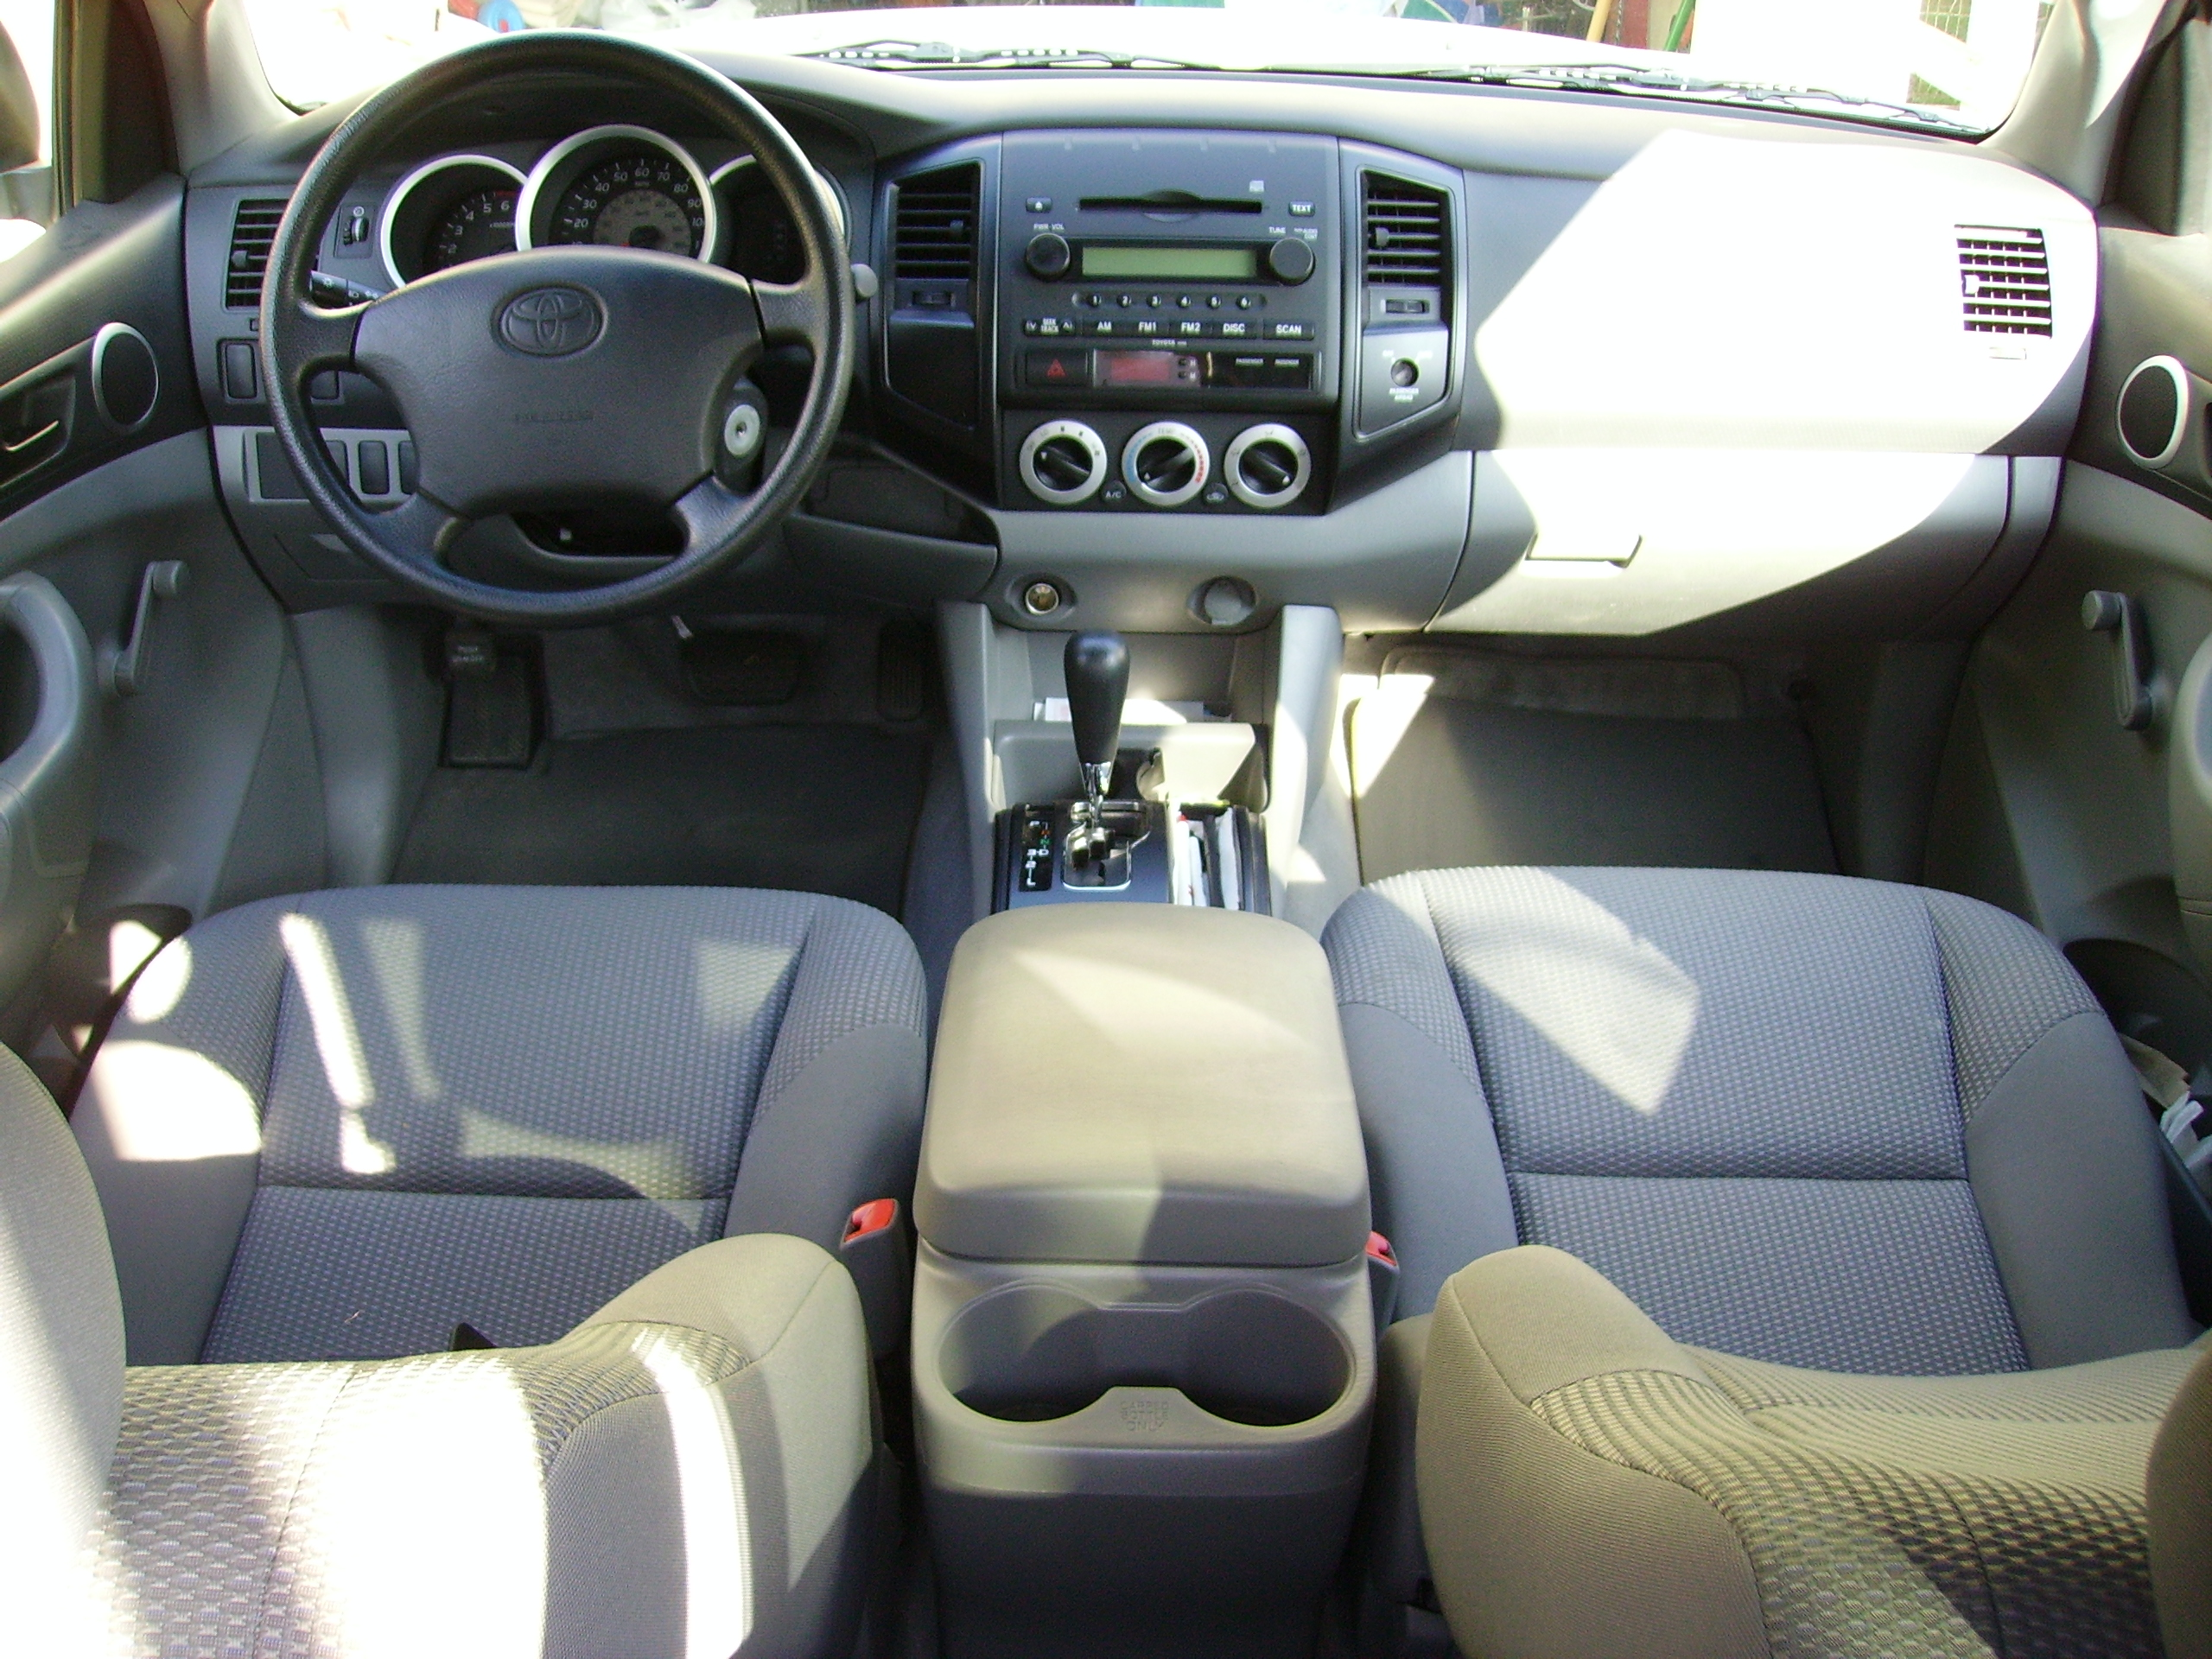 Description 06 Toyota Tacoma interior.JPG